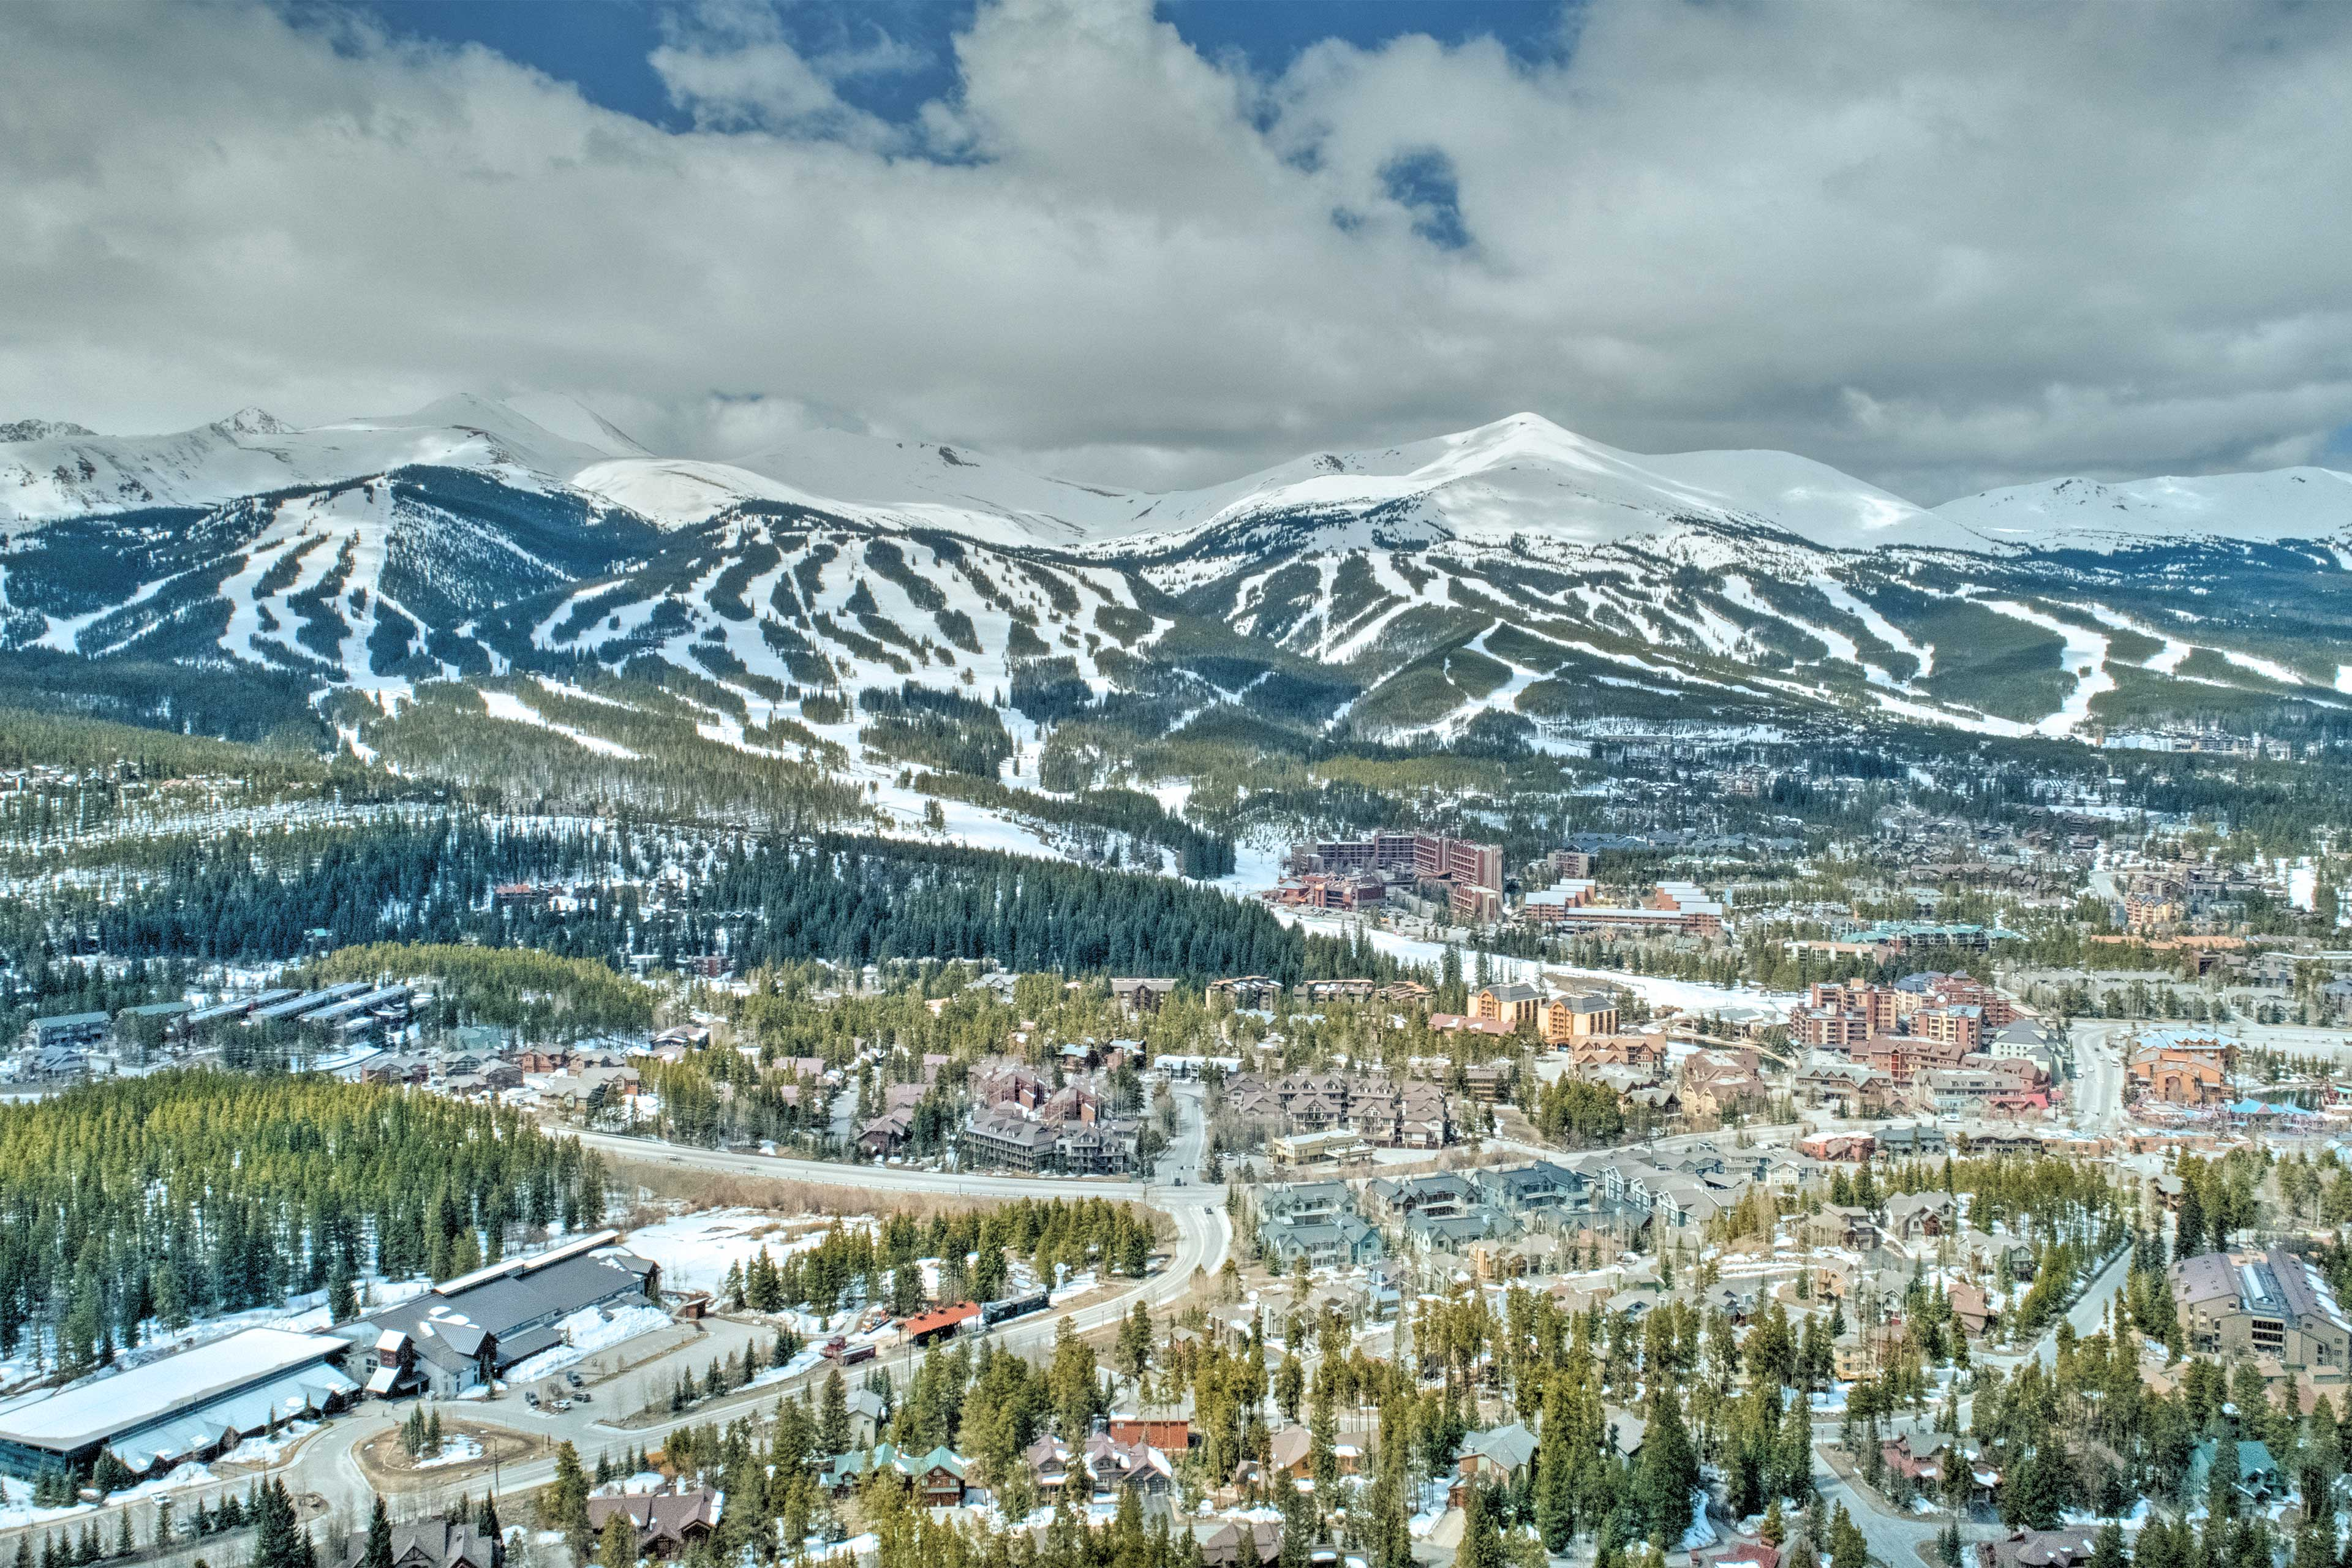 The city of Breckenridge will take your breath away!